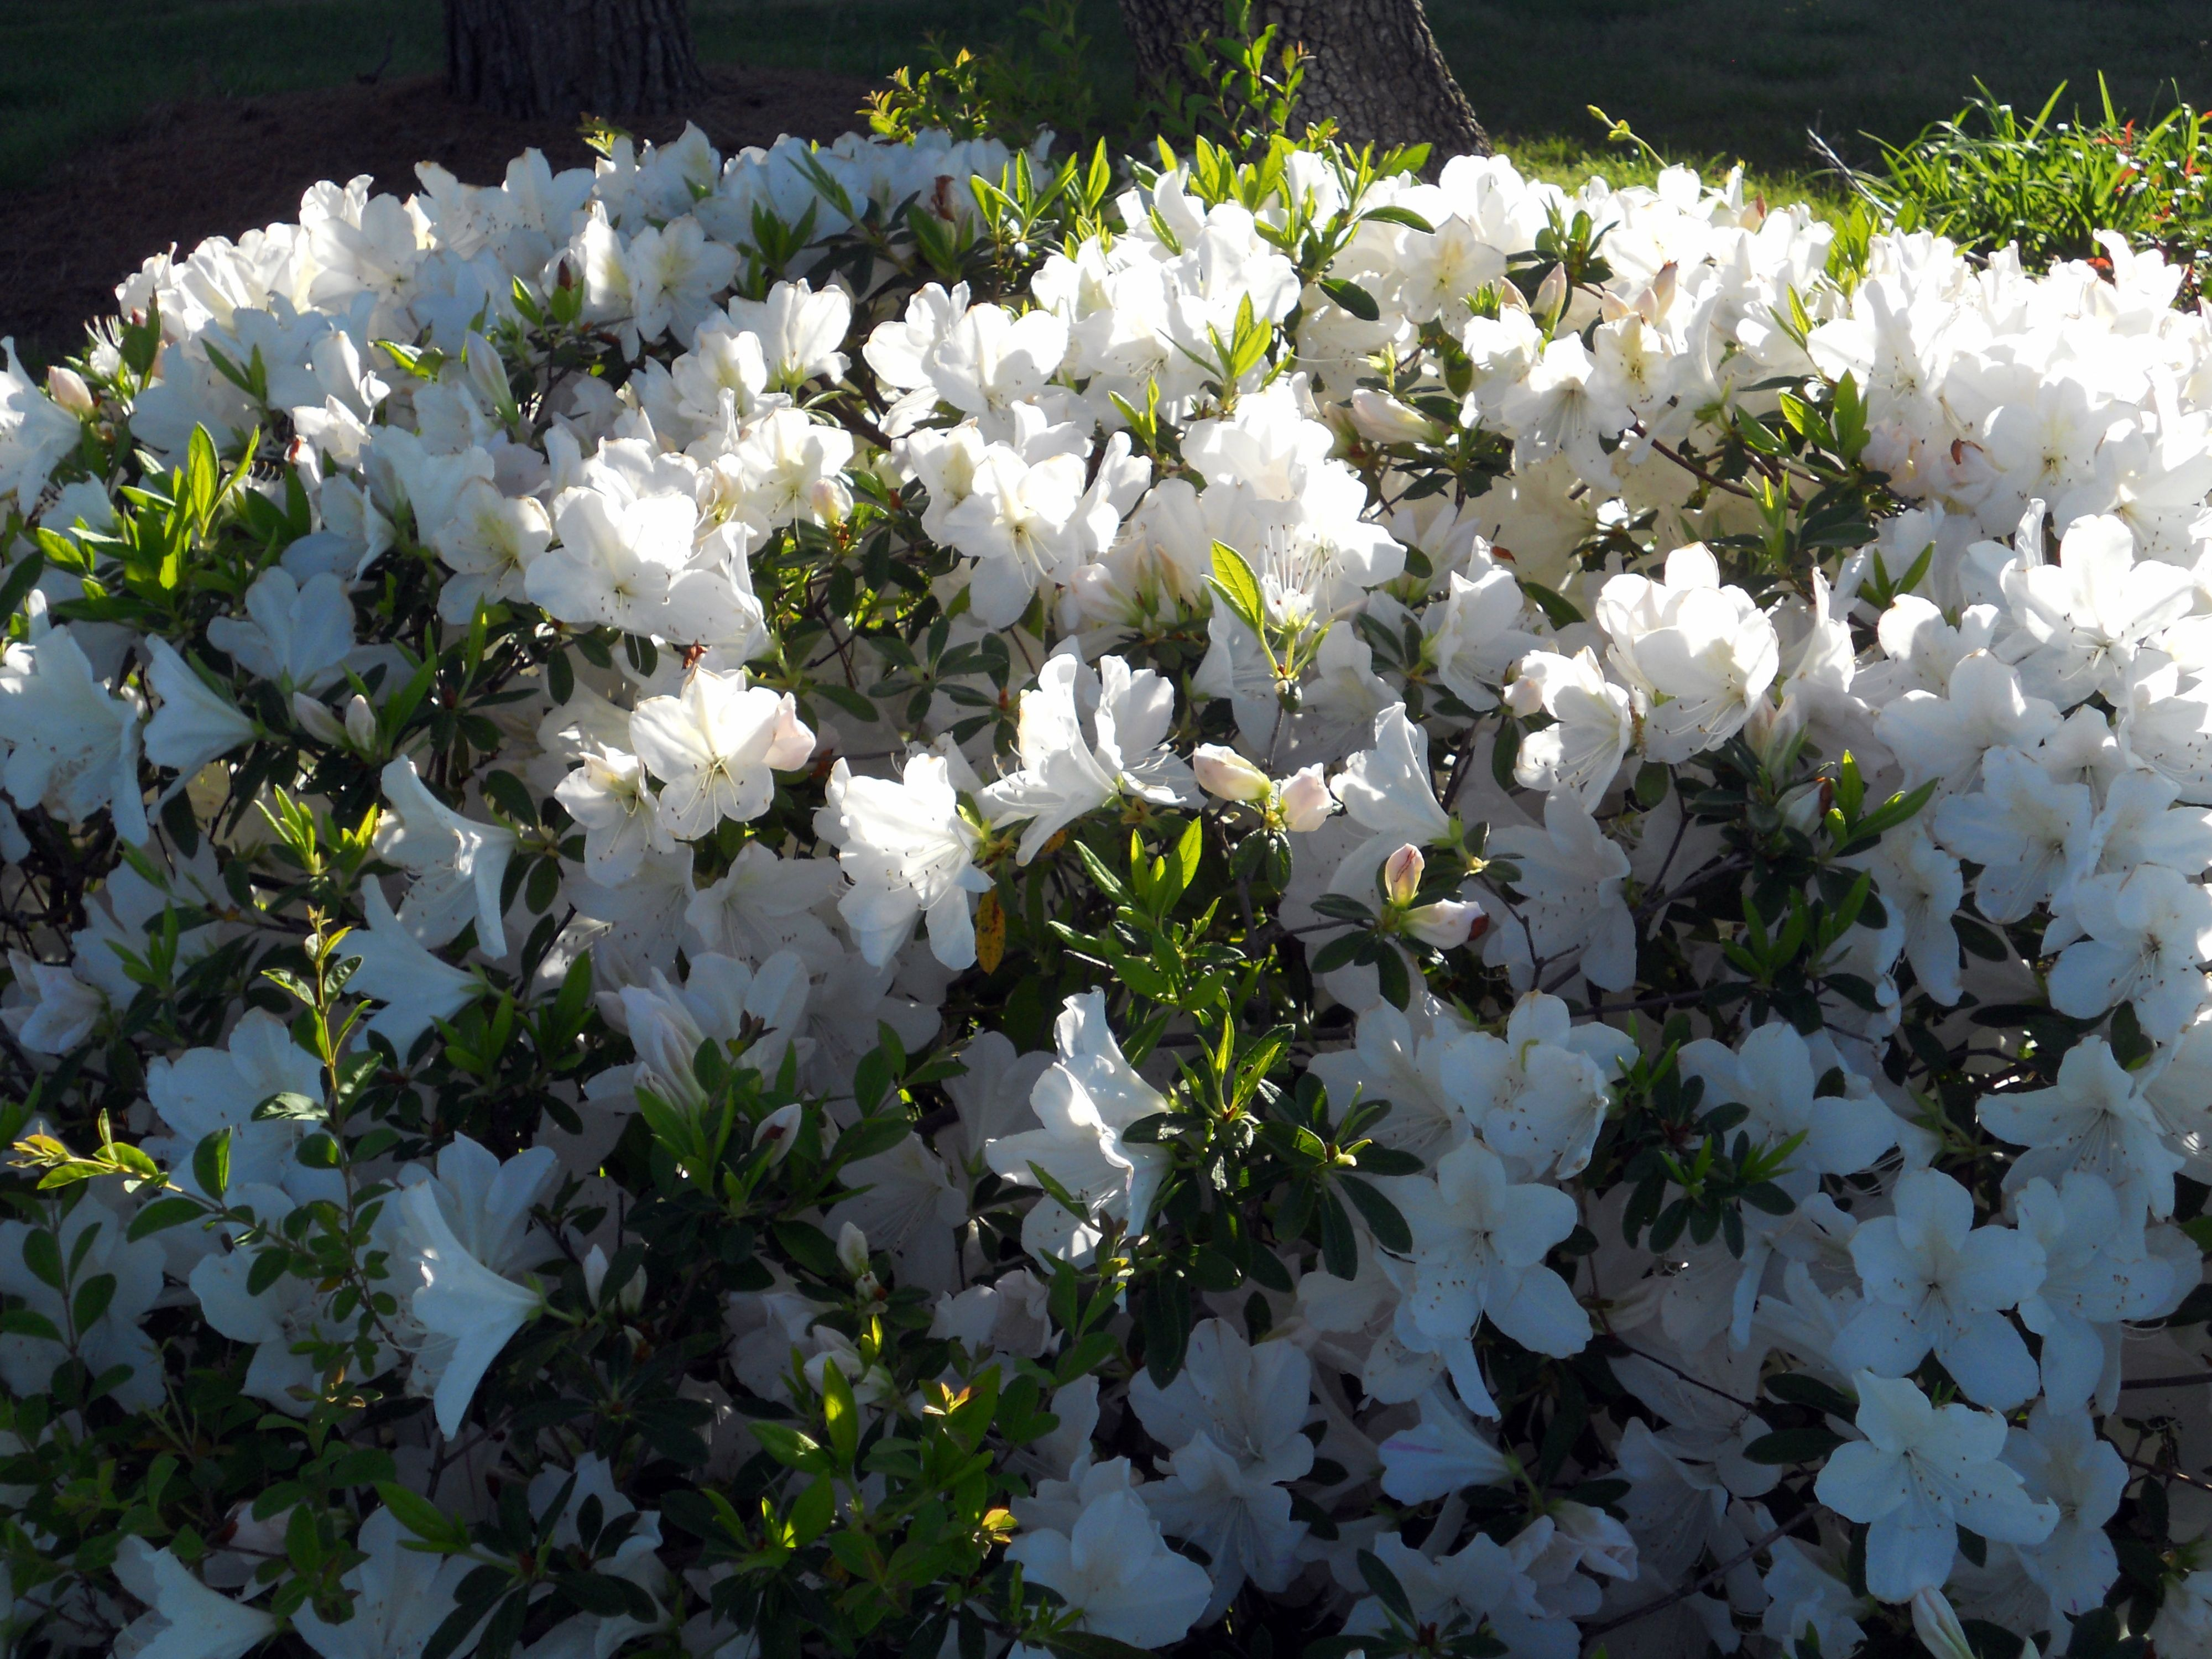 I Love Azaleas And This Beautiful White Formosa Azalea Is The Epitome Of Spring